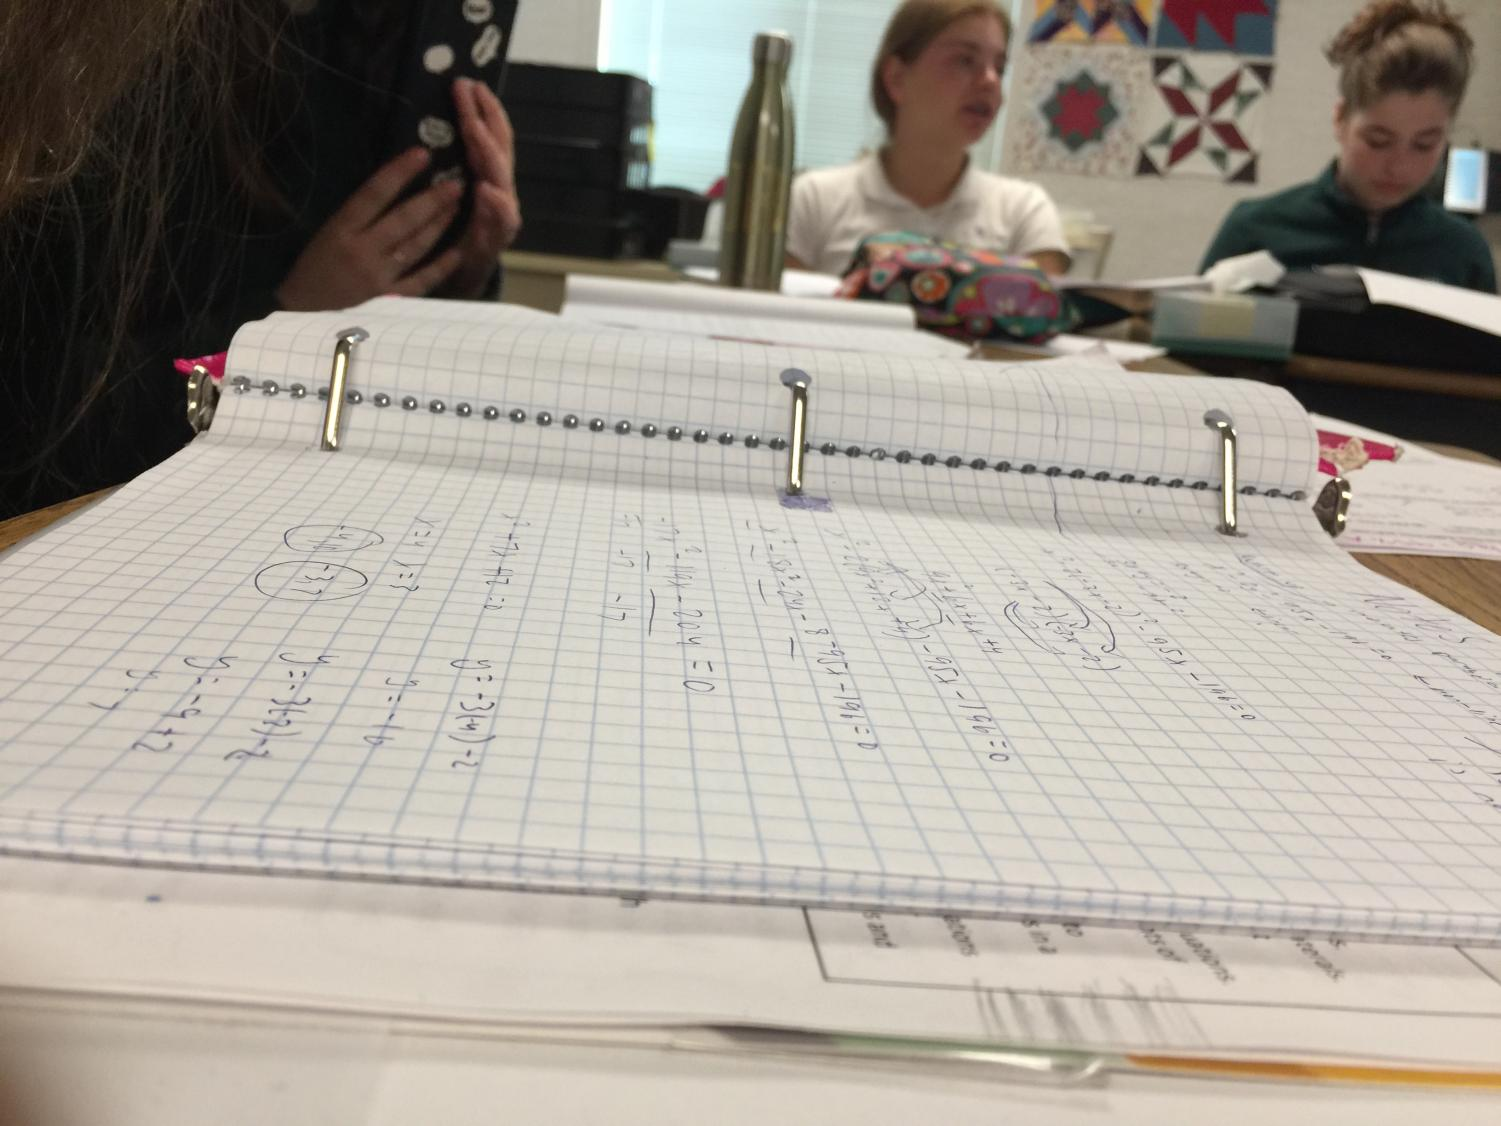 A binder sits on a desk in Leila Chakravarty's math classroom. Her ninth and 10th grade Integrated Math III class completes practice problems on solving quadratic and linear systems of equations.